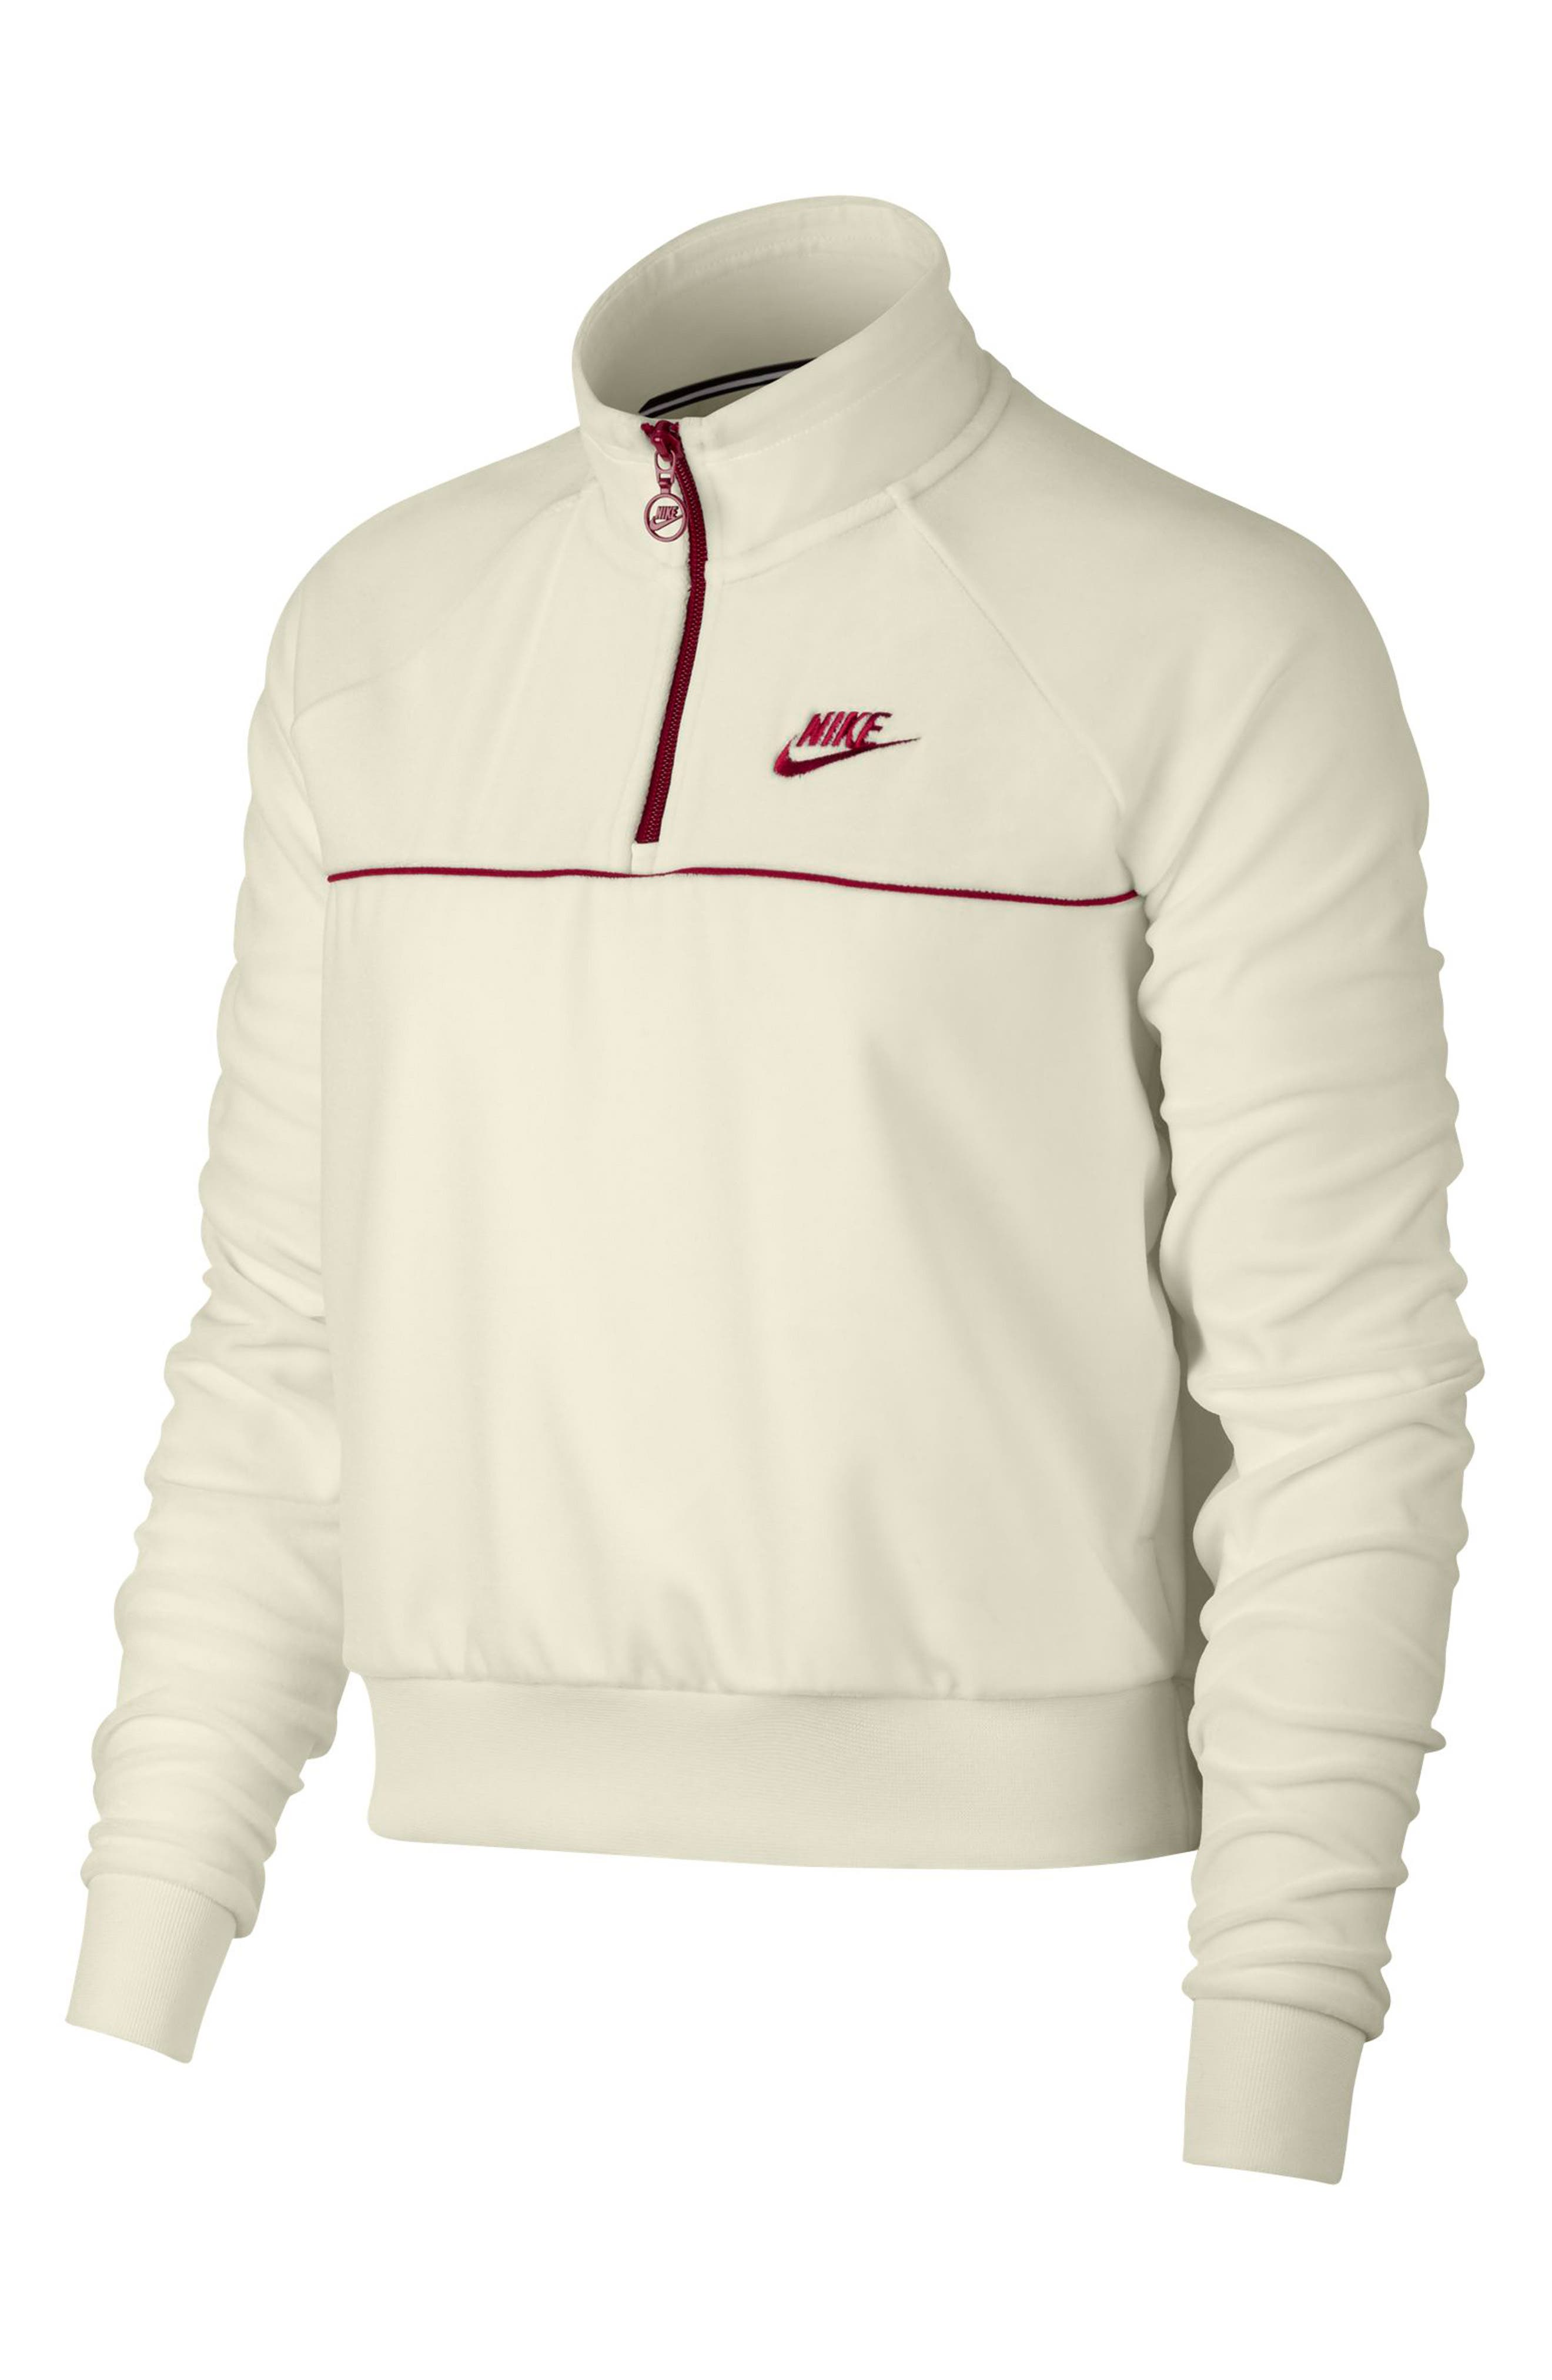 NIKE Sportswear Quarter Zip Velour Pullover, Main, color, SAIL/ RED CRUSH